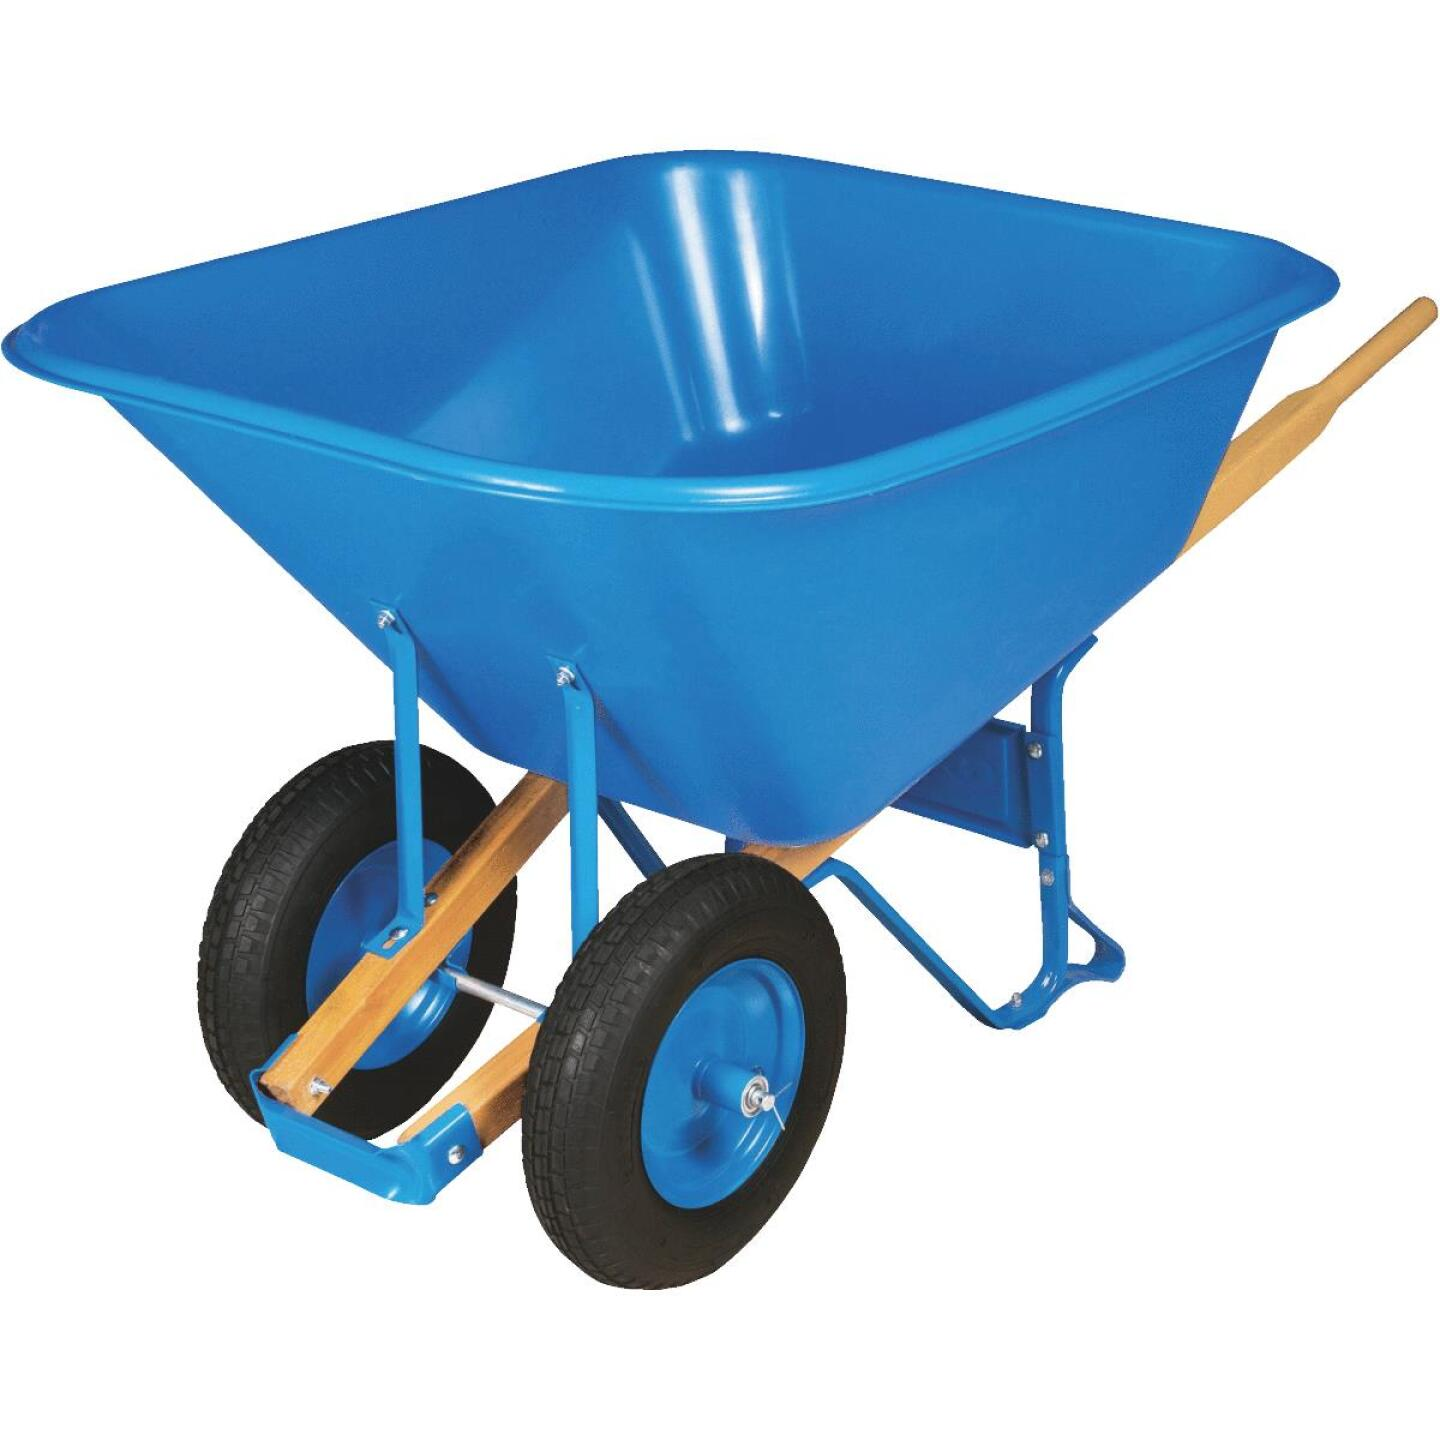 Truper Tru Pro 10 Cu. Ft. Poly Wheelbarrow Image 1